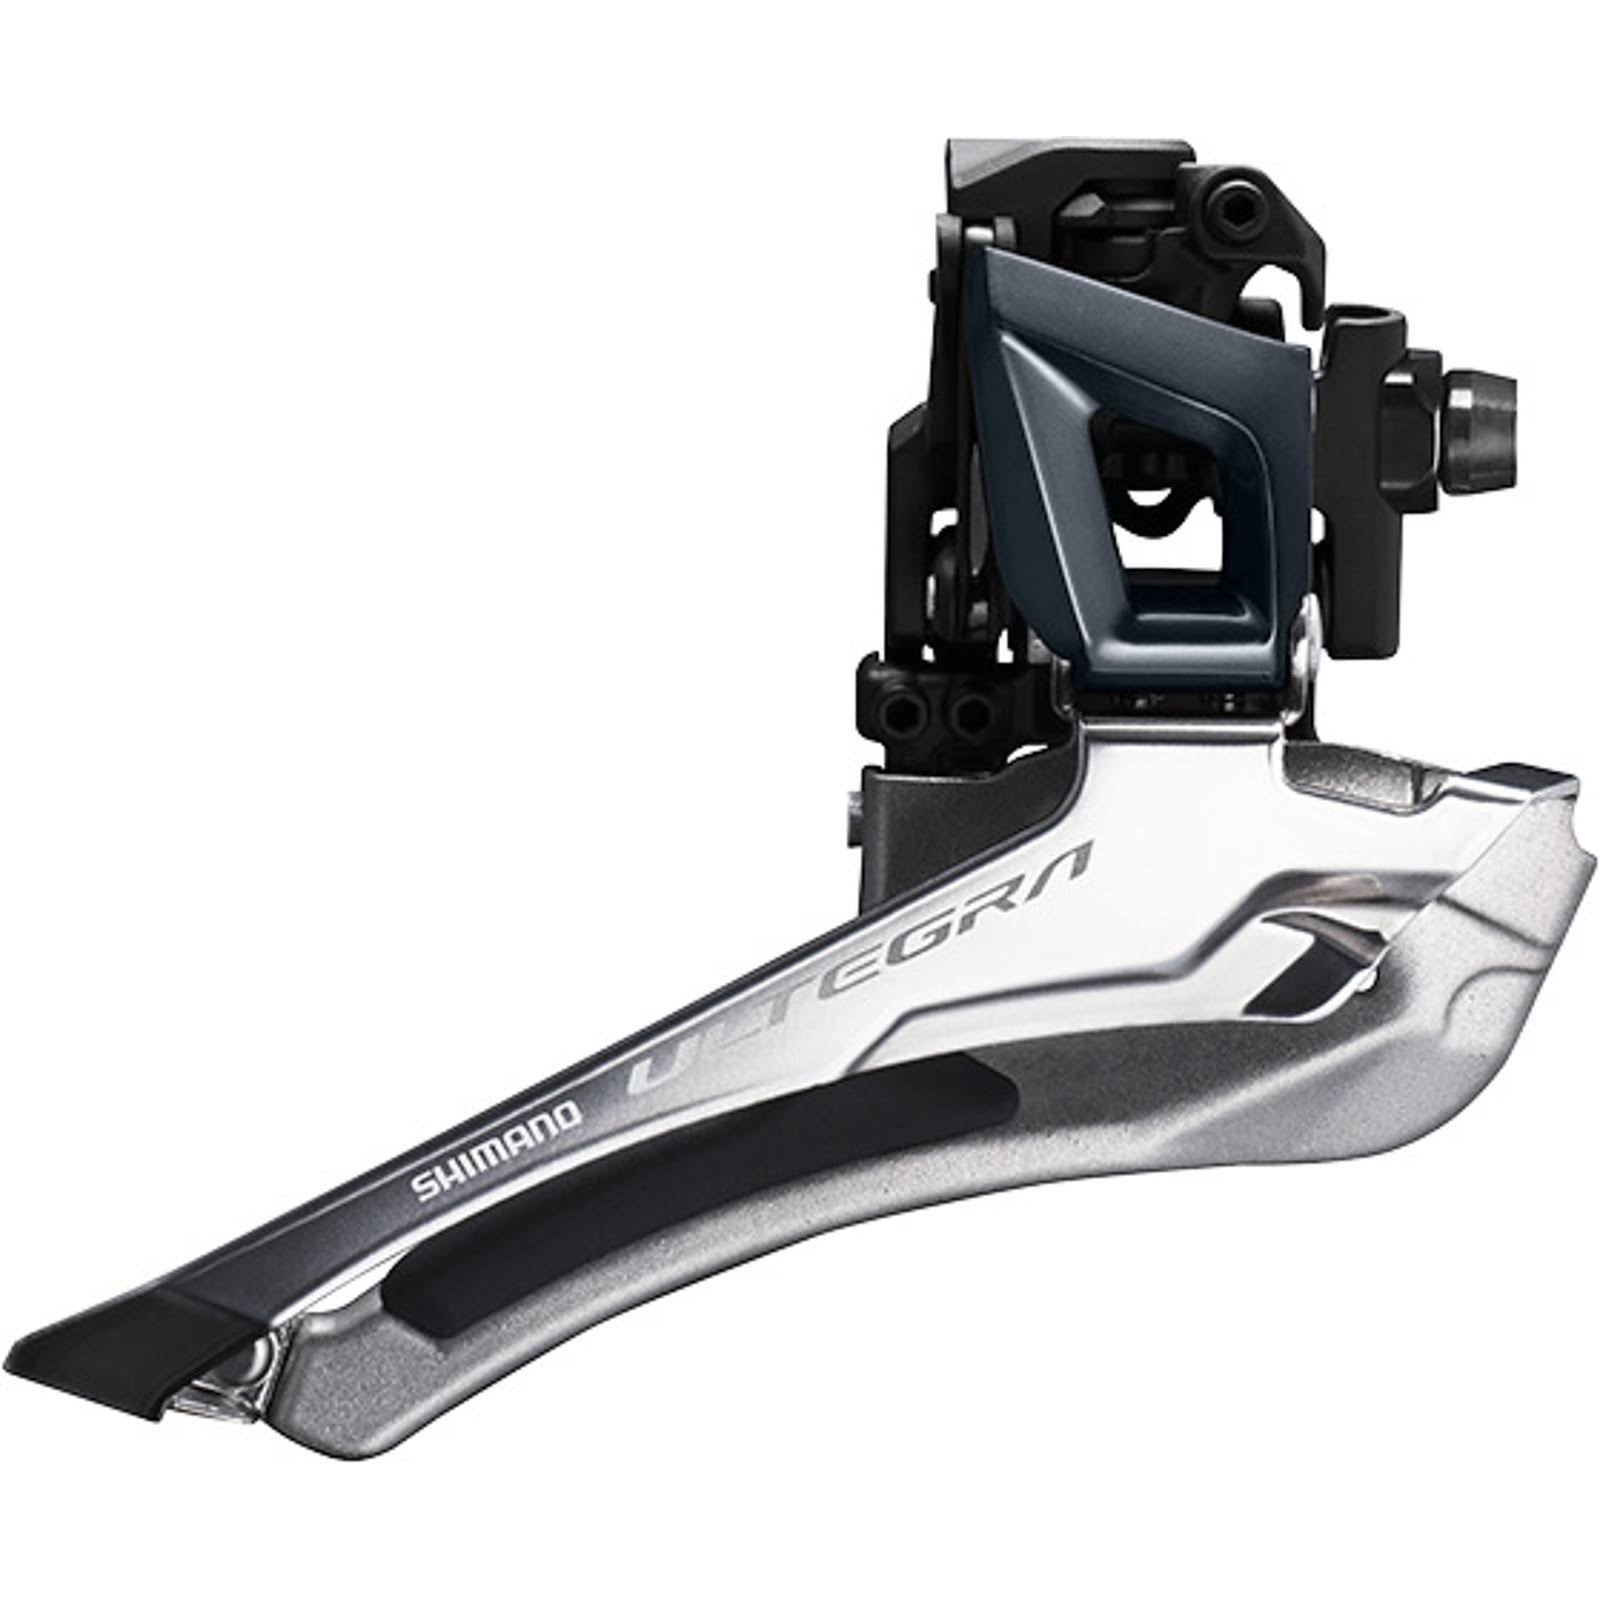 Shimano Ultegra R8000 Braze-On Front Derailleur - Black, 11 Speeds